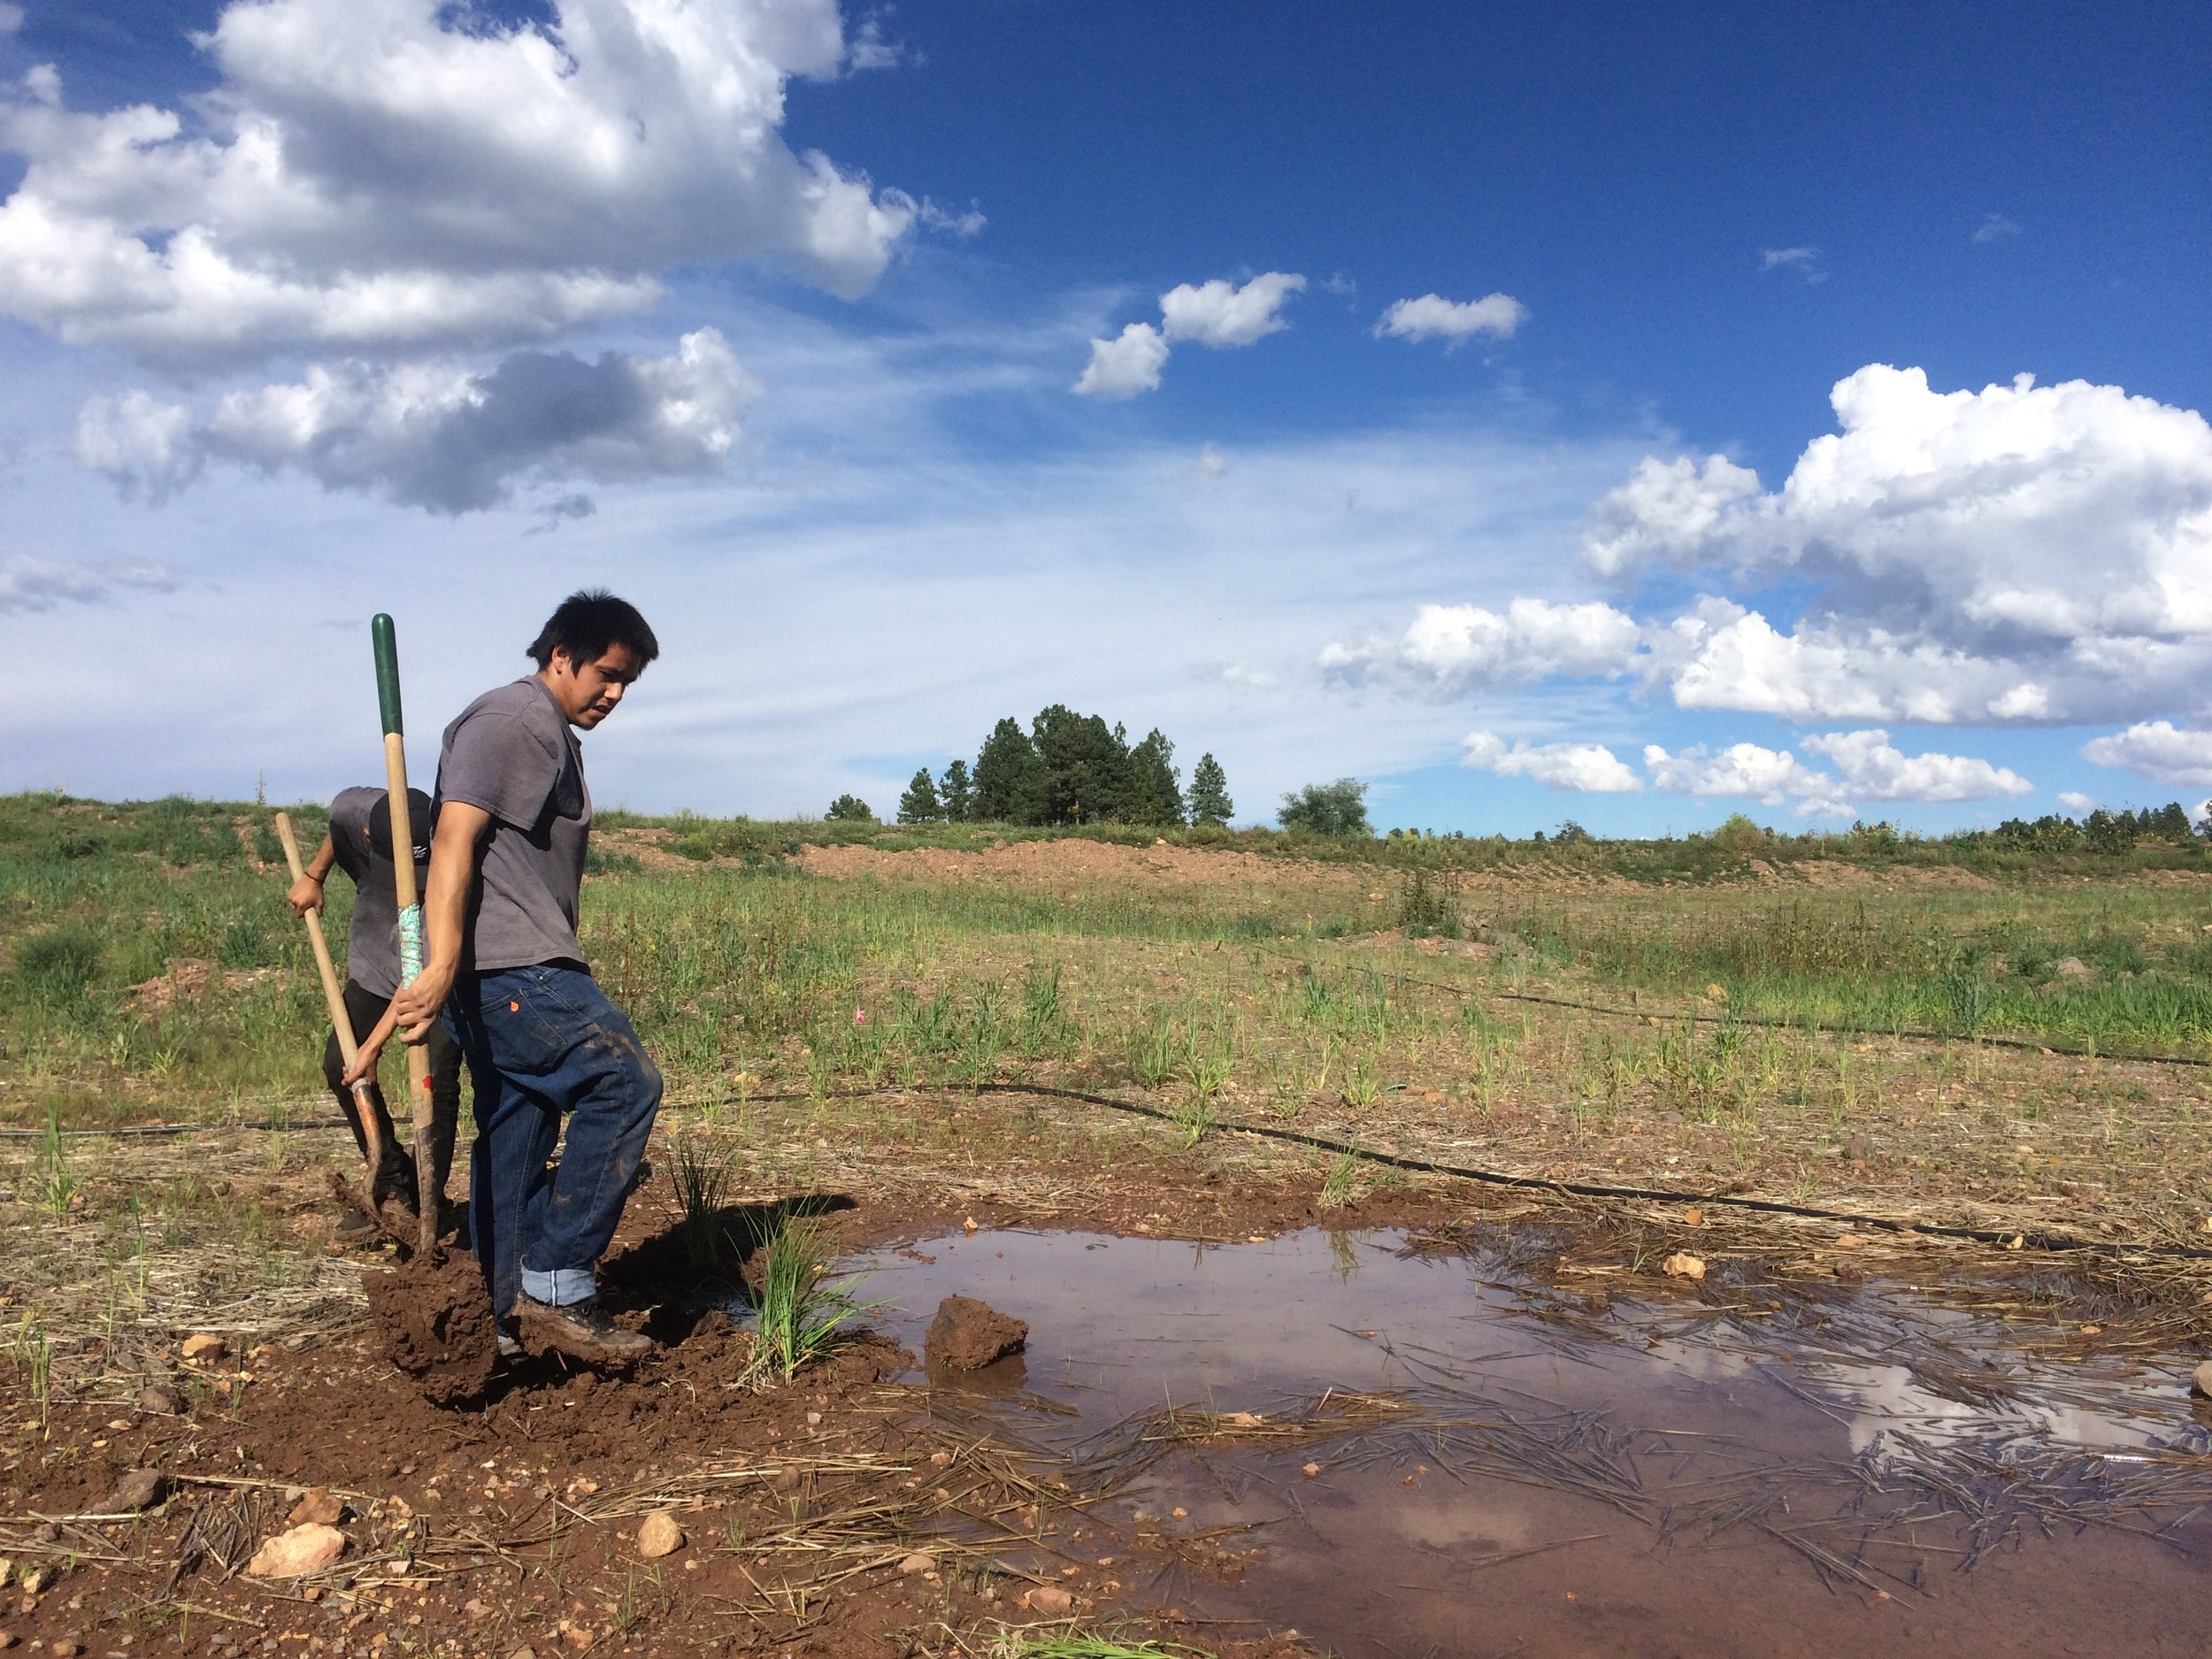 Youth interns working to restore the Kachina Wetlands south of Flagstaff, Arizona. Summer 2018.